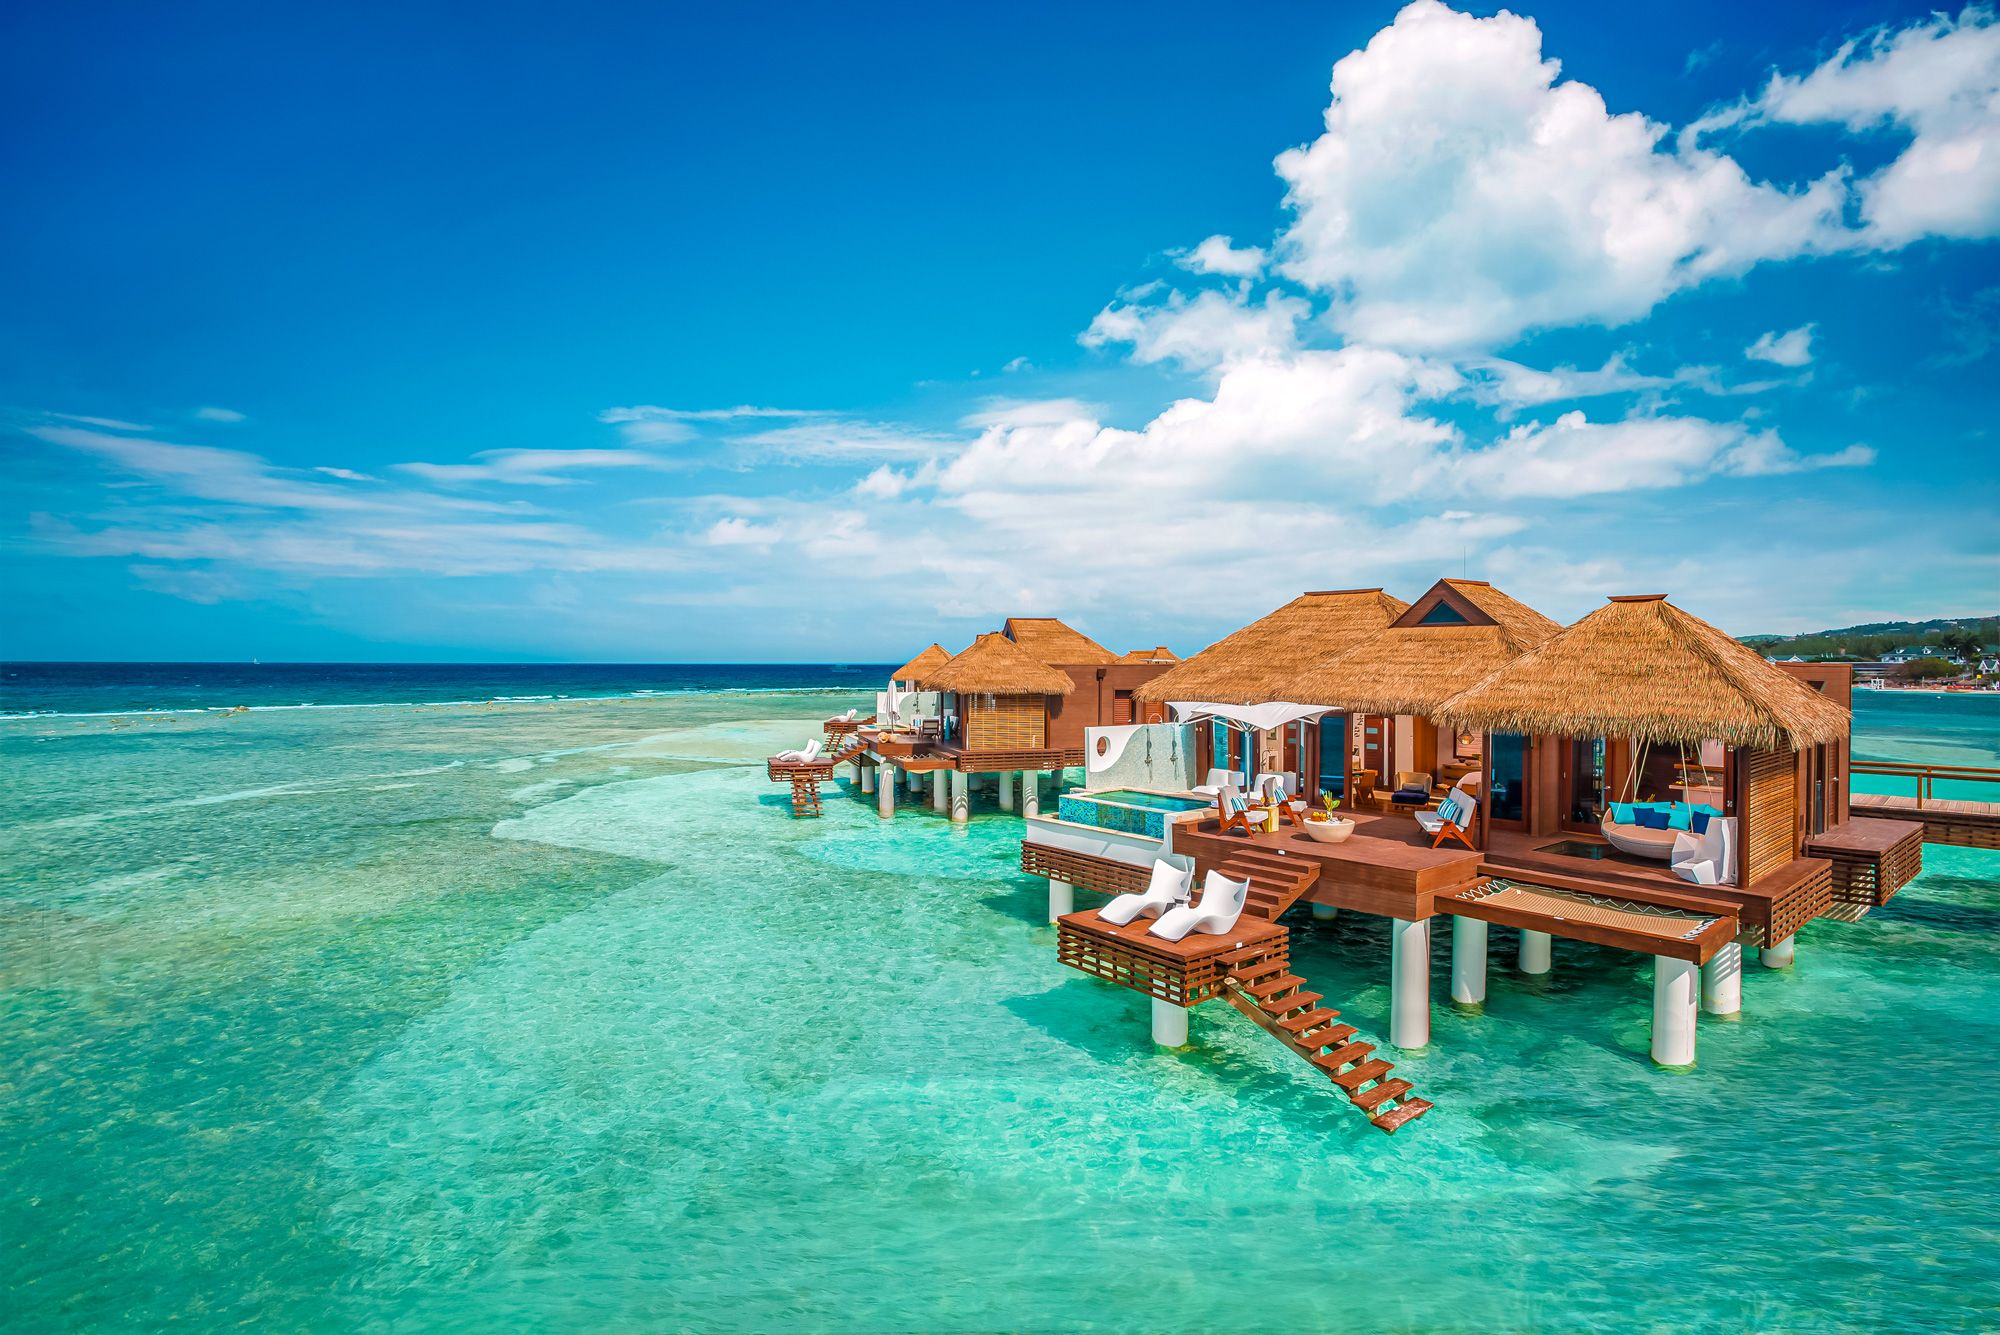 Sandals 10 Most Spectacular & Romantic Honeymoon Suites In The Caribbean